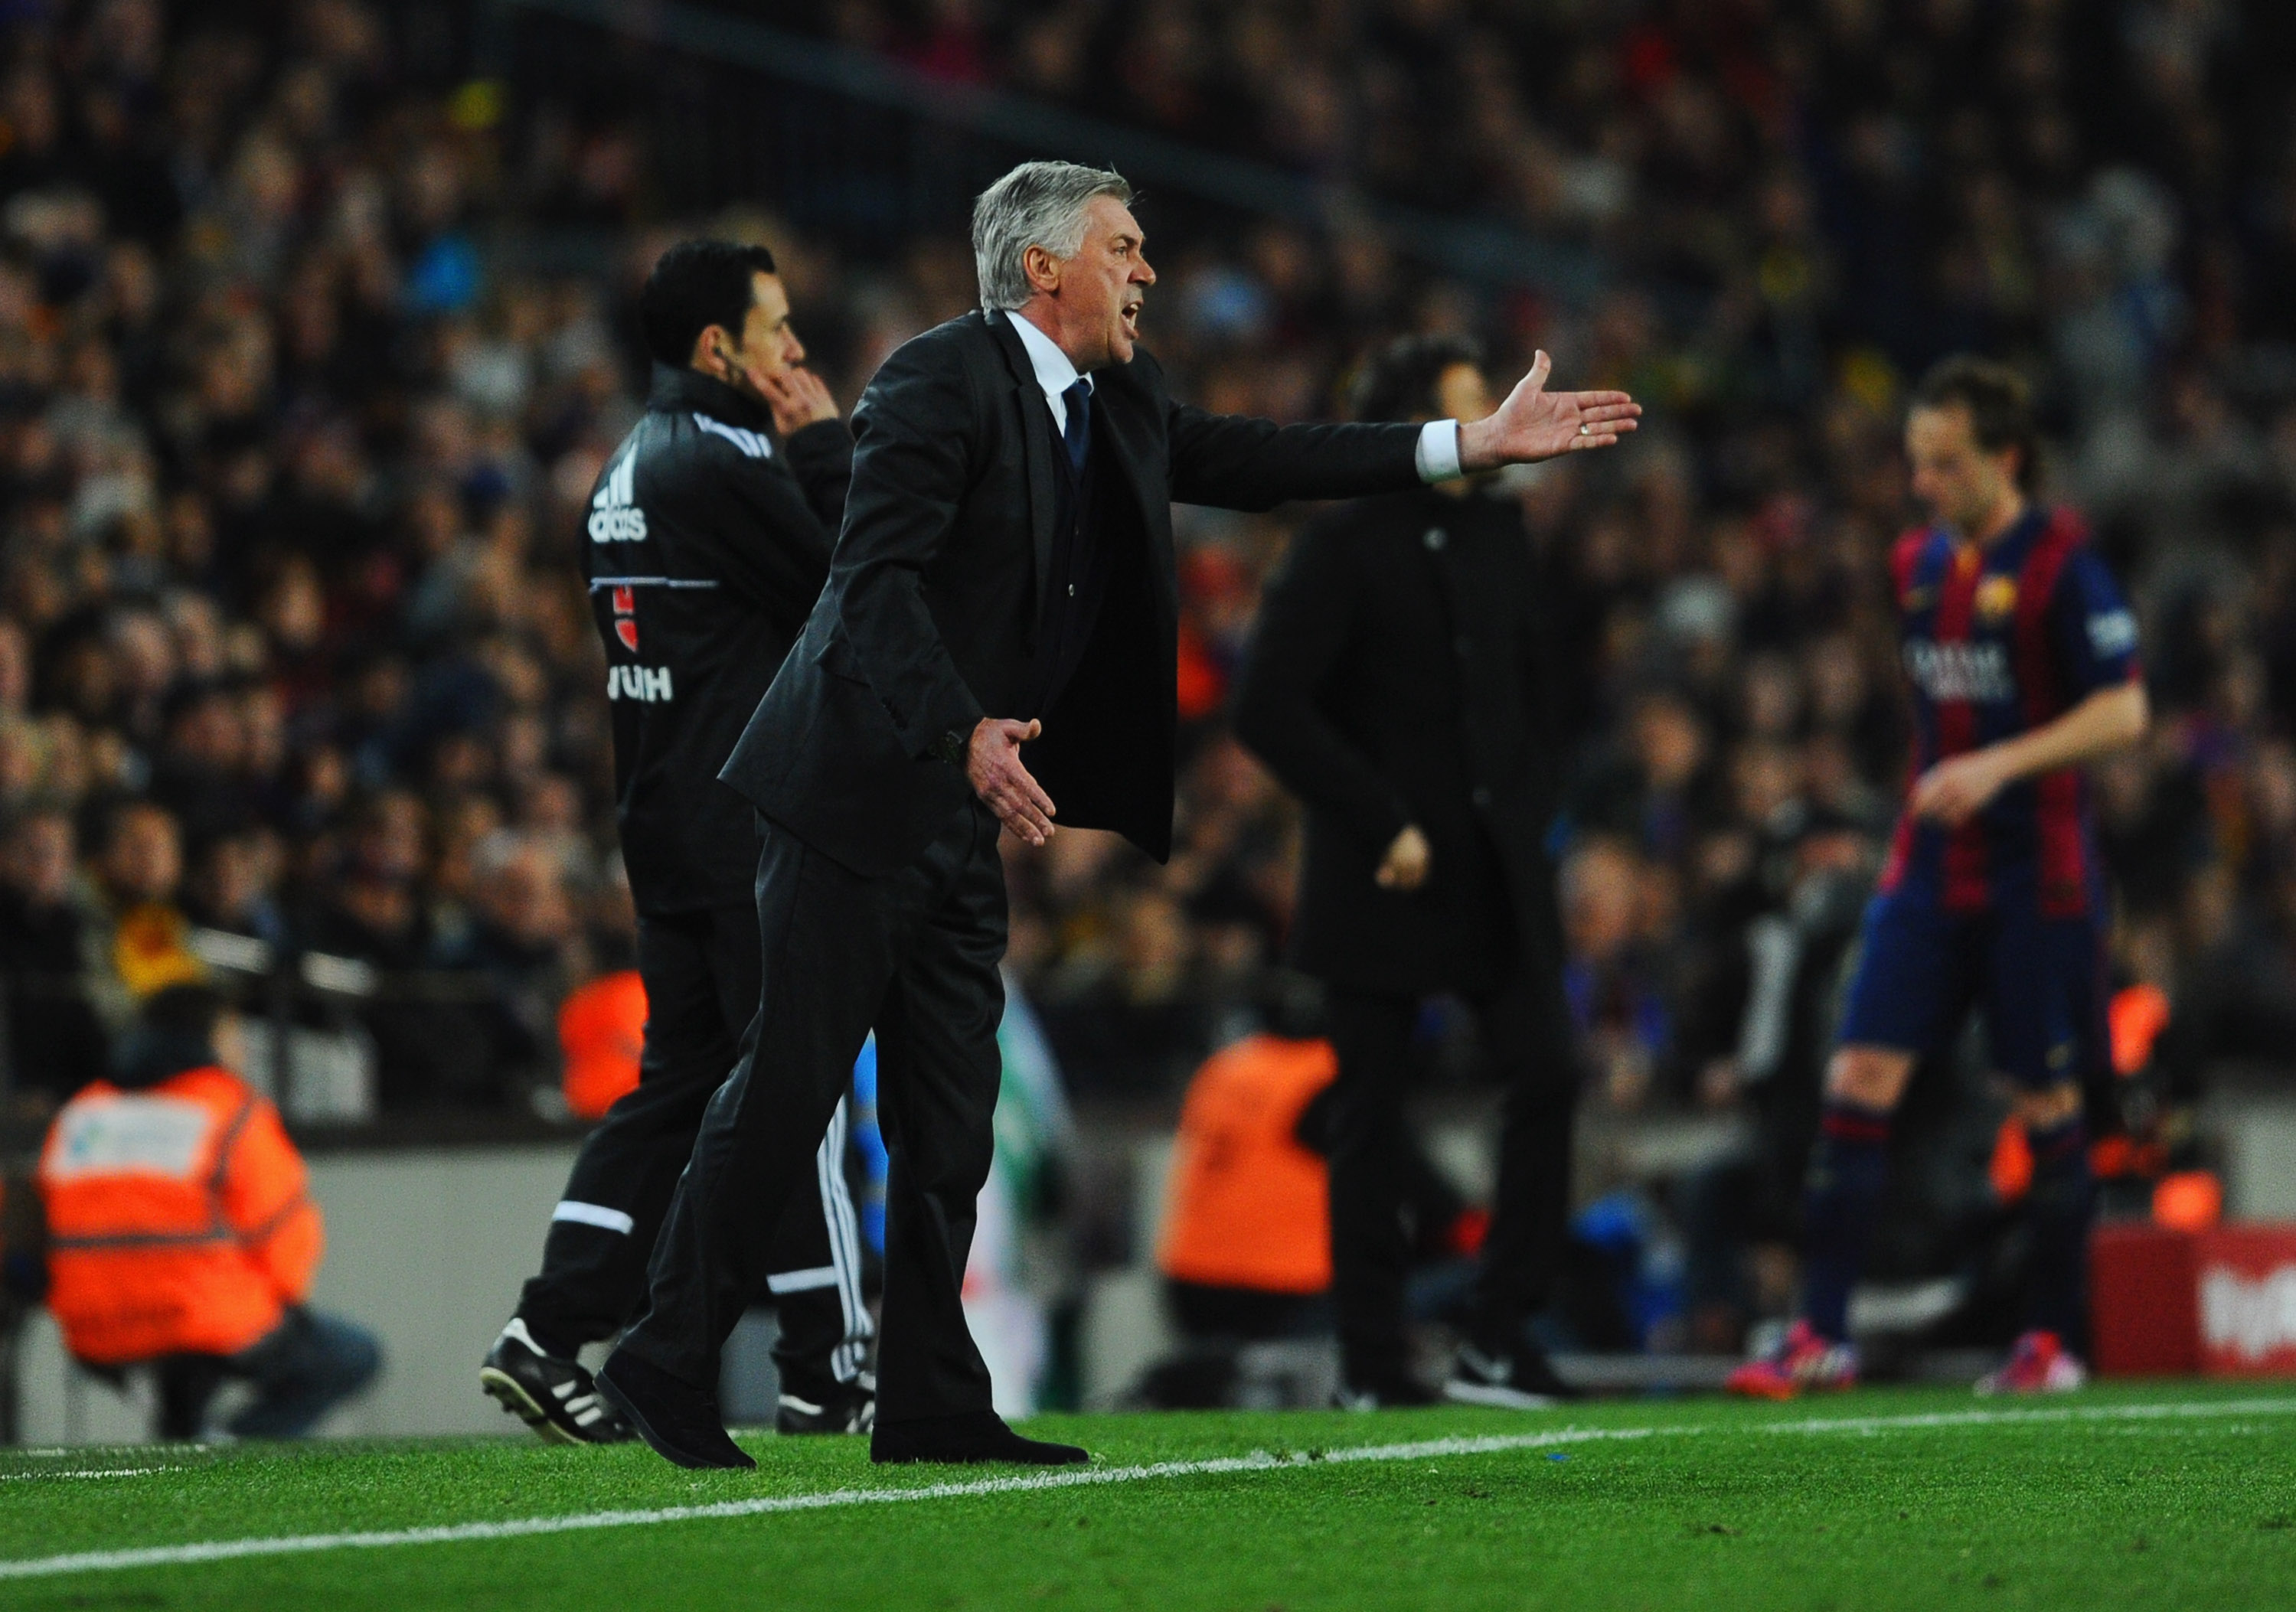 """Carlo Ancelotti: """"This team has a lot of quality and we have to enjoy them"""""""